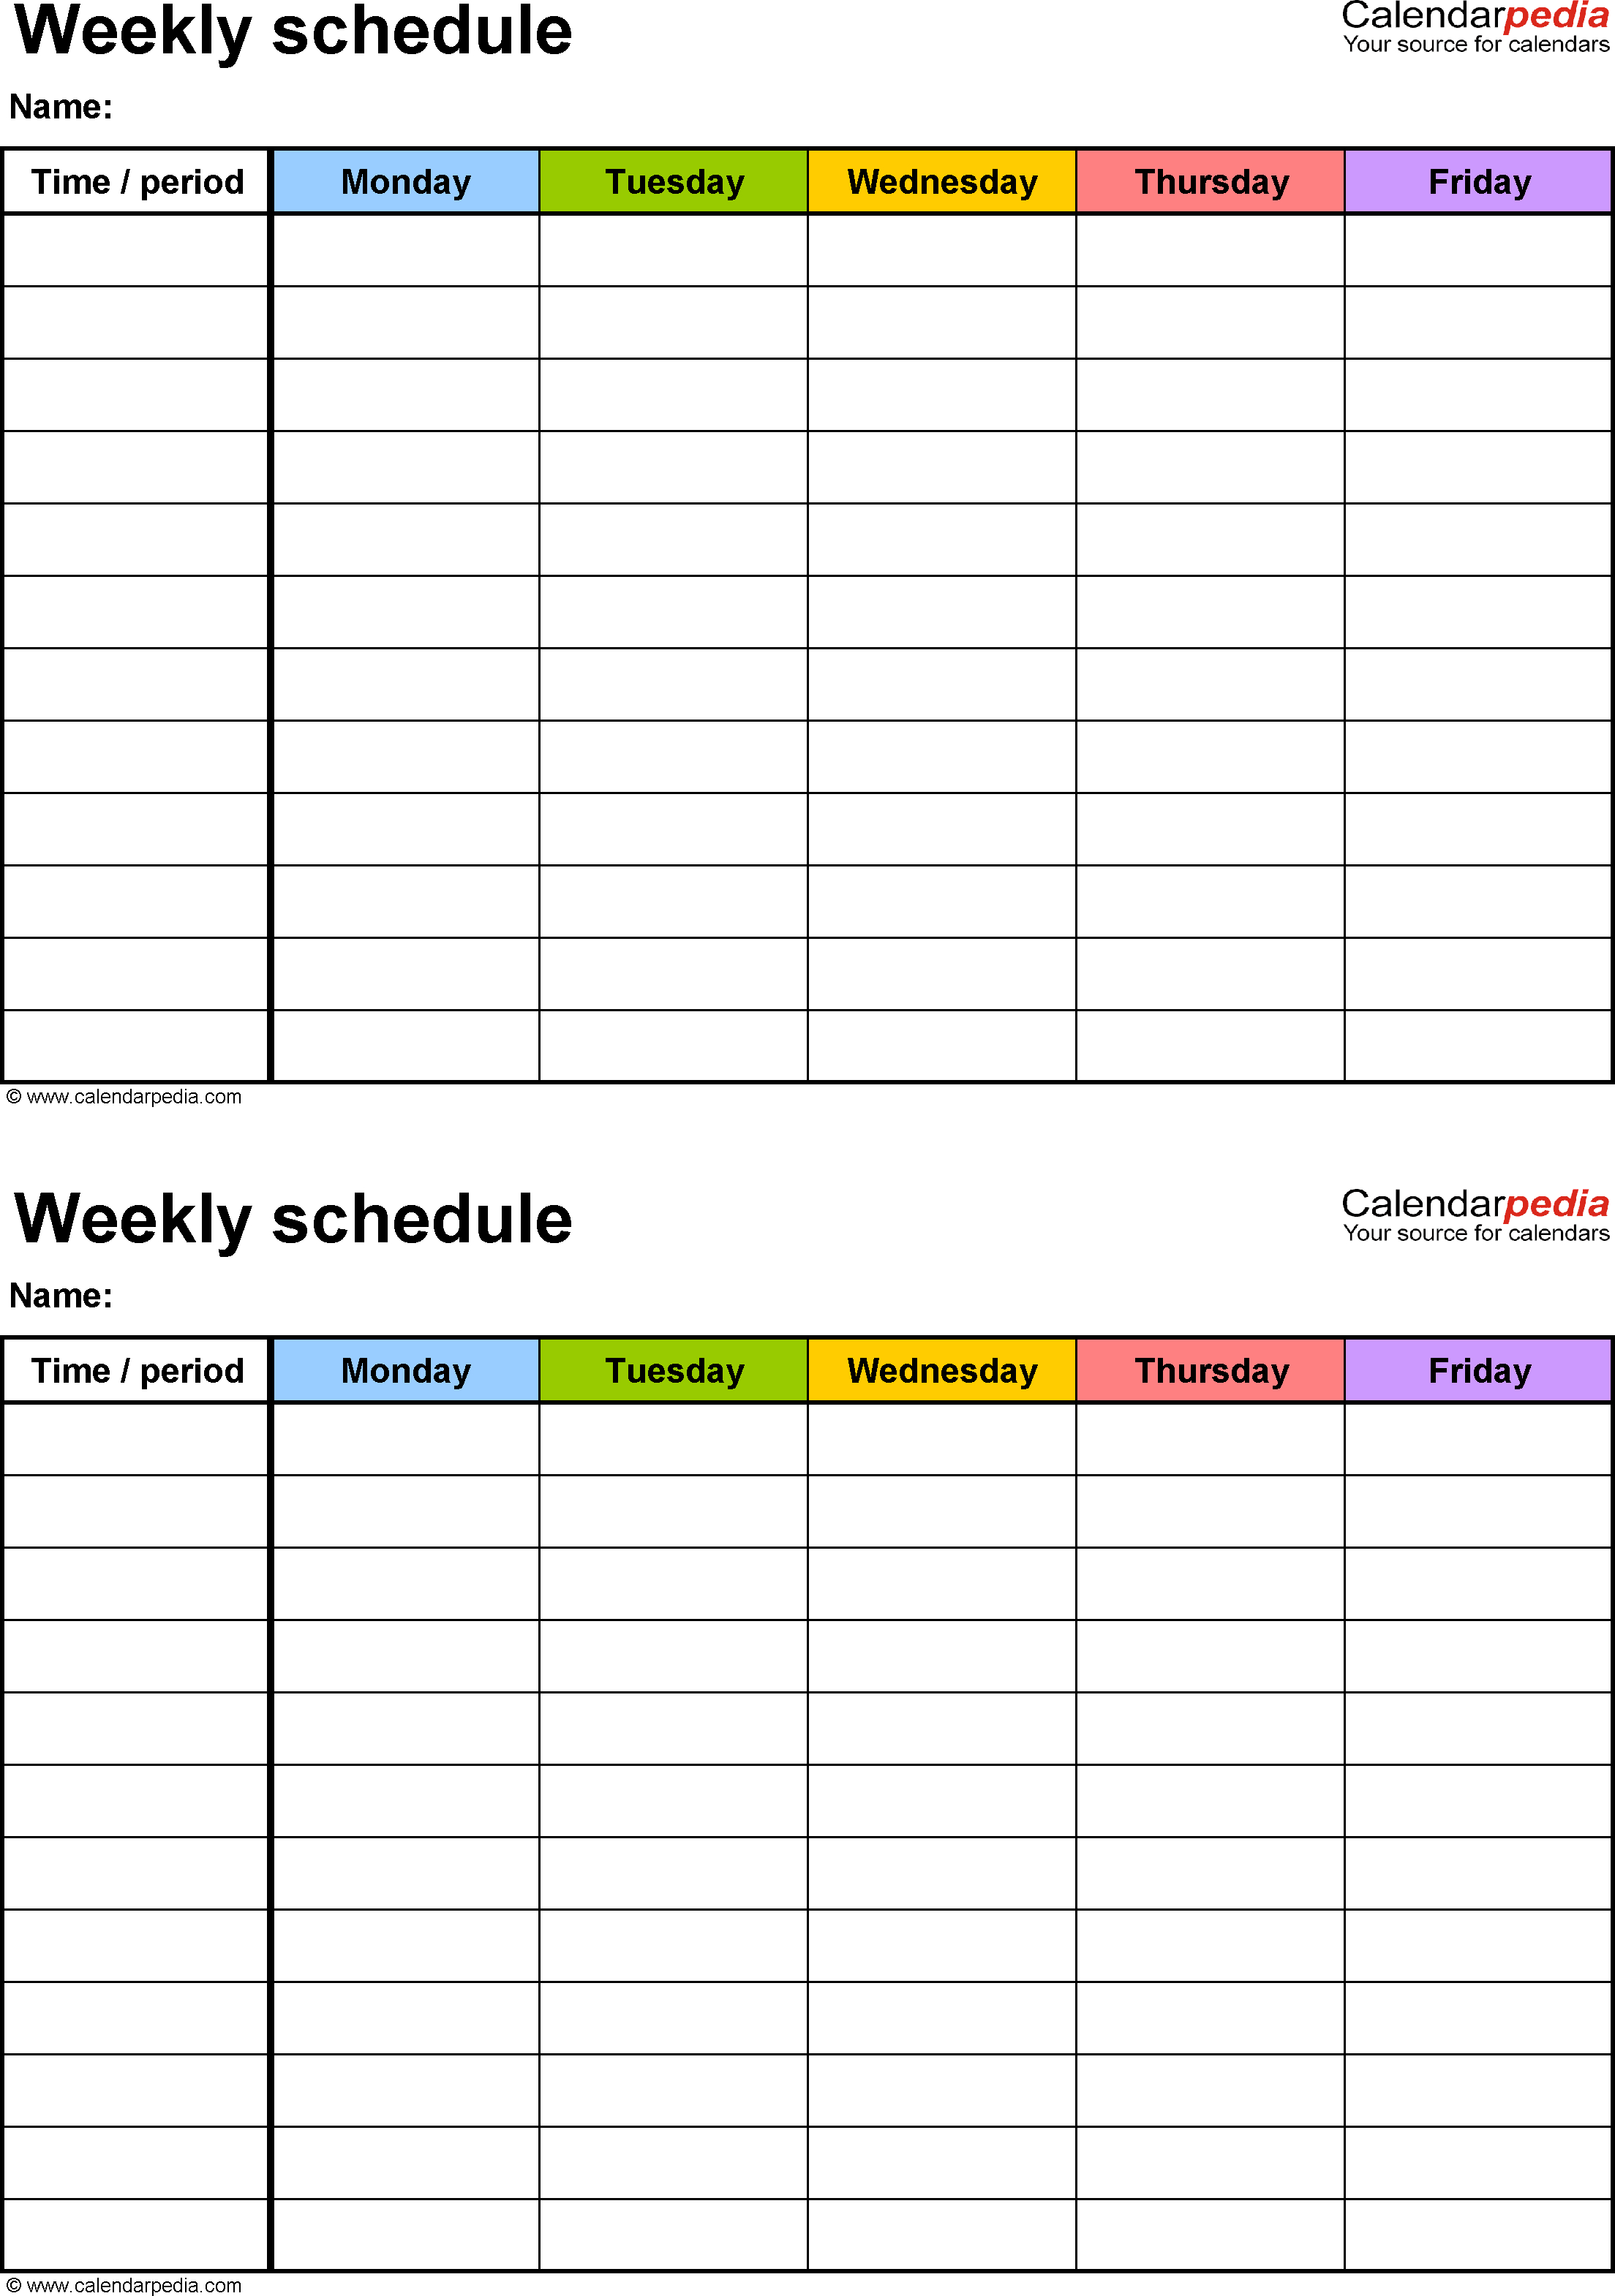 Free Weekly Schedule Templates For Word  18 Templates intended for Sunday Through Saturday Schedule Template